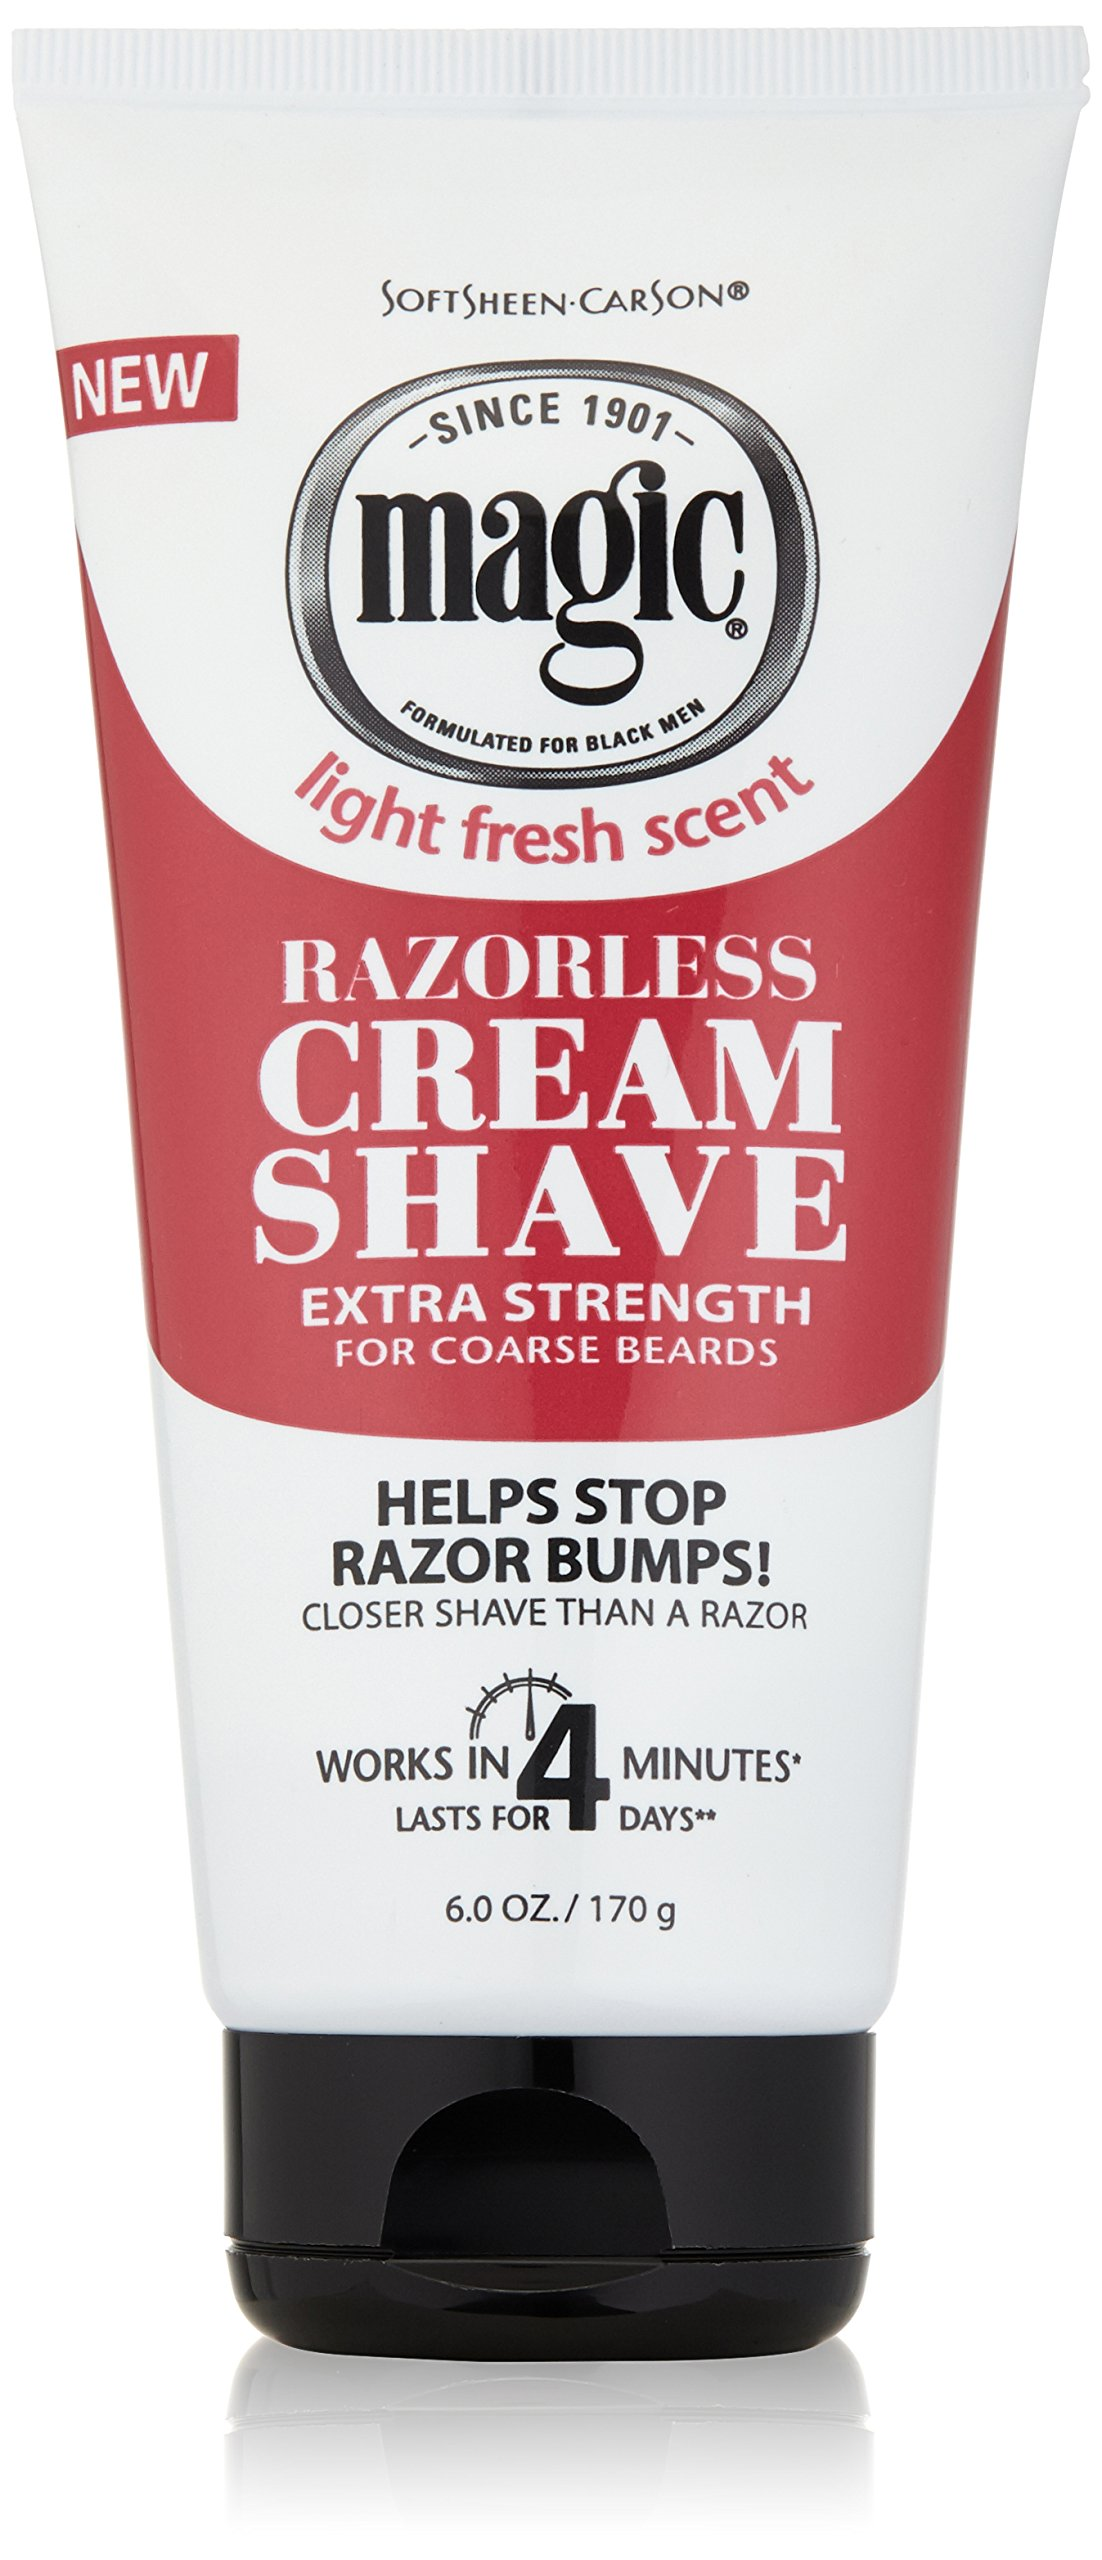 Razorless Shaving Cream for Men by SoftSheen-Carson Magic, Hair Removal Cream, Extra Strength for Coarse Beards, No Razor Needed, Depilatory cream works in 4 Minutes for Coarse Curly Hair, 6 oz